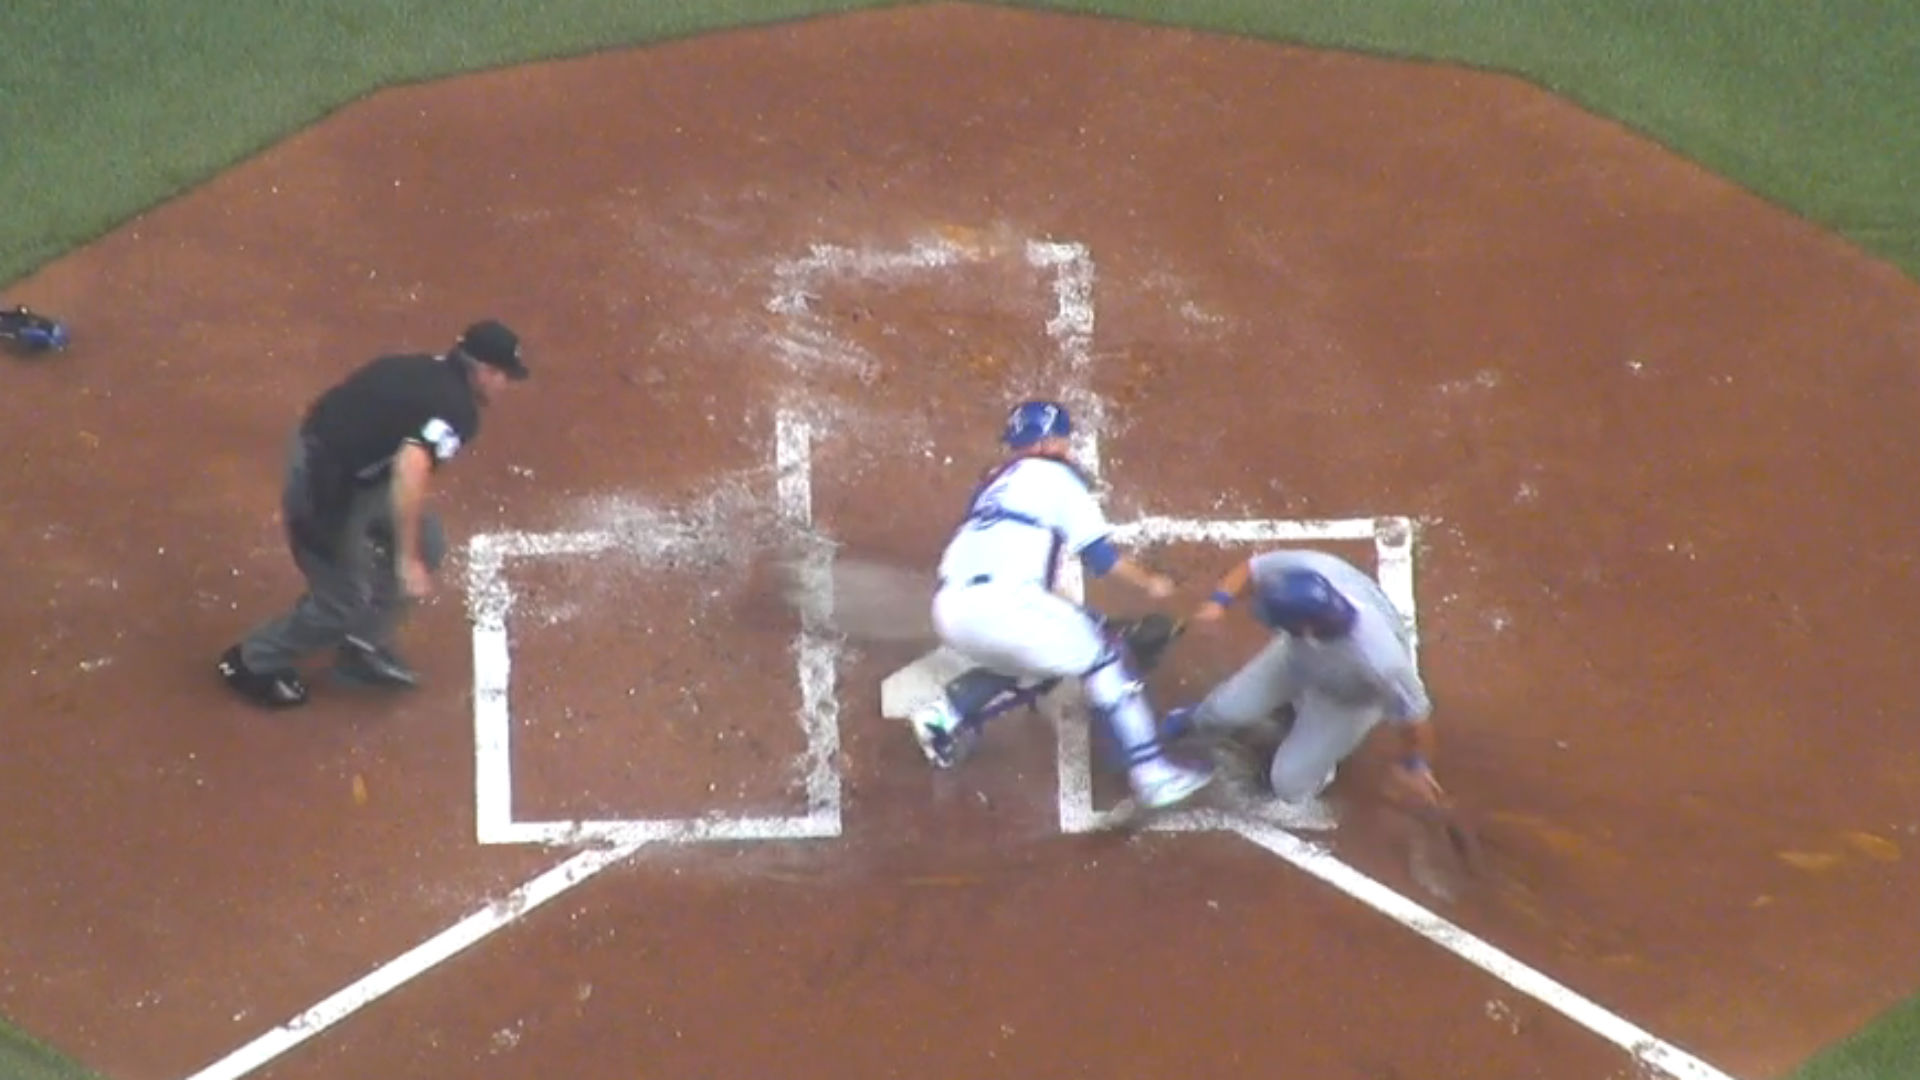 Royals' Kendrys Morales avoids out with slick slide into home plate